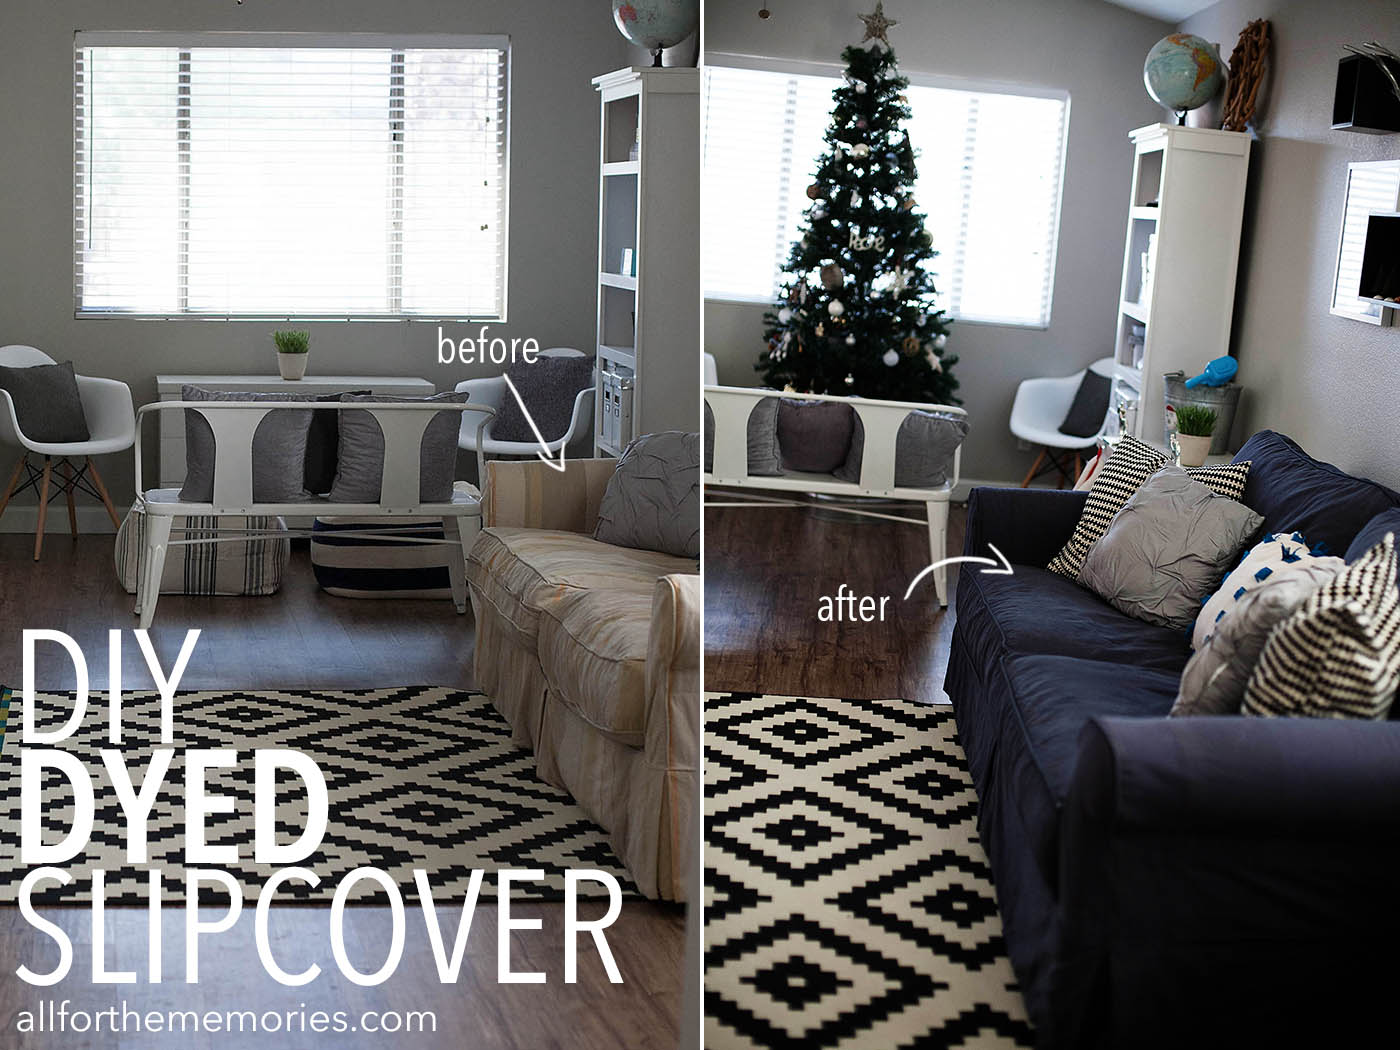 How to Dye a Sofa Slipcover - All for the Memories